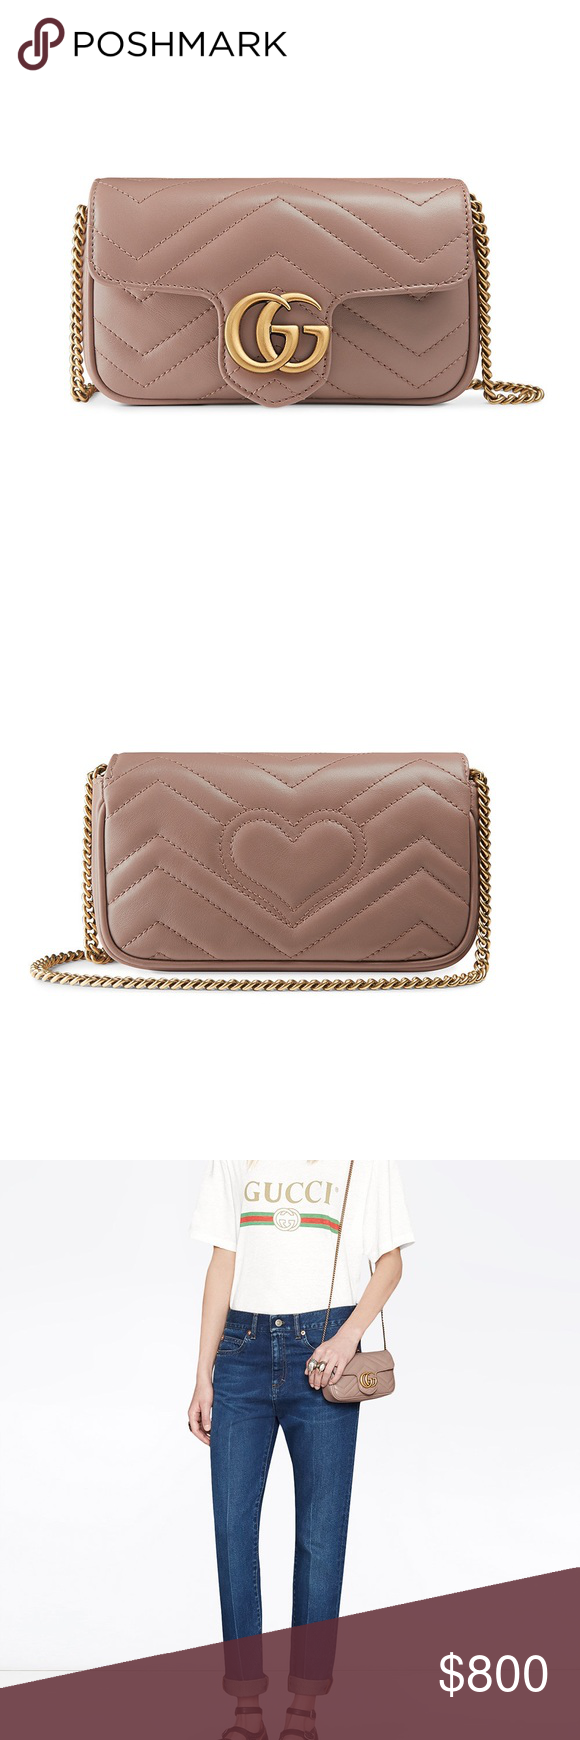 a5576fa2583 Looking for Gucci Marmont Matelasse Super Mini Bag Looking for new or  pre-loved Gucci Marmont Matelasse Super Mini Bag in nude color. Gucci Bags  Mini Bags